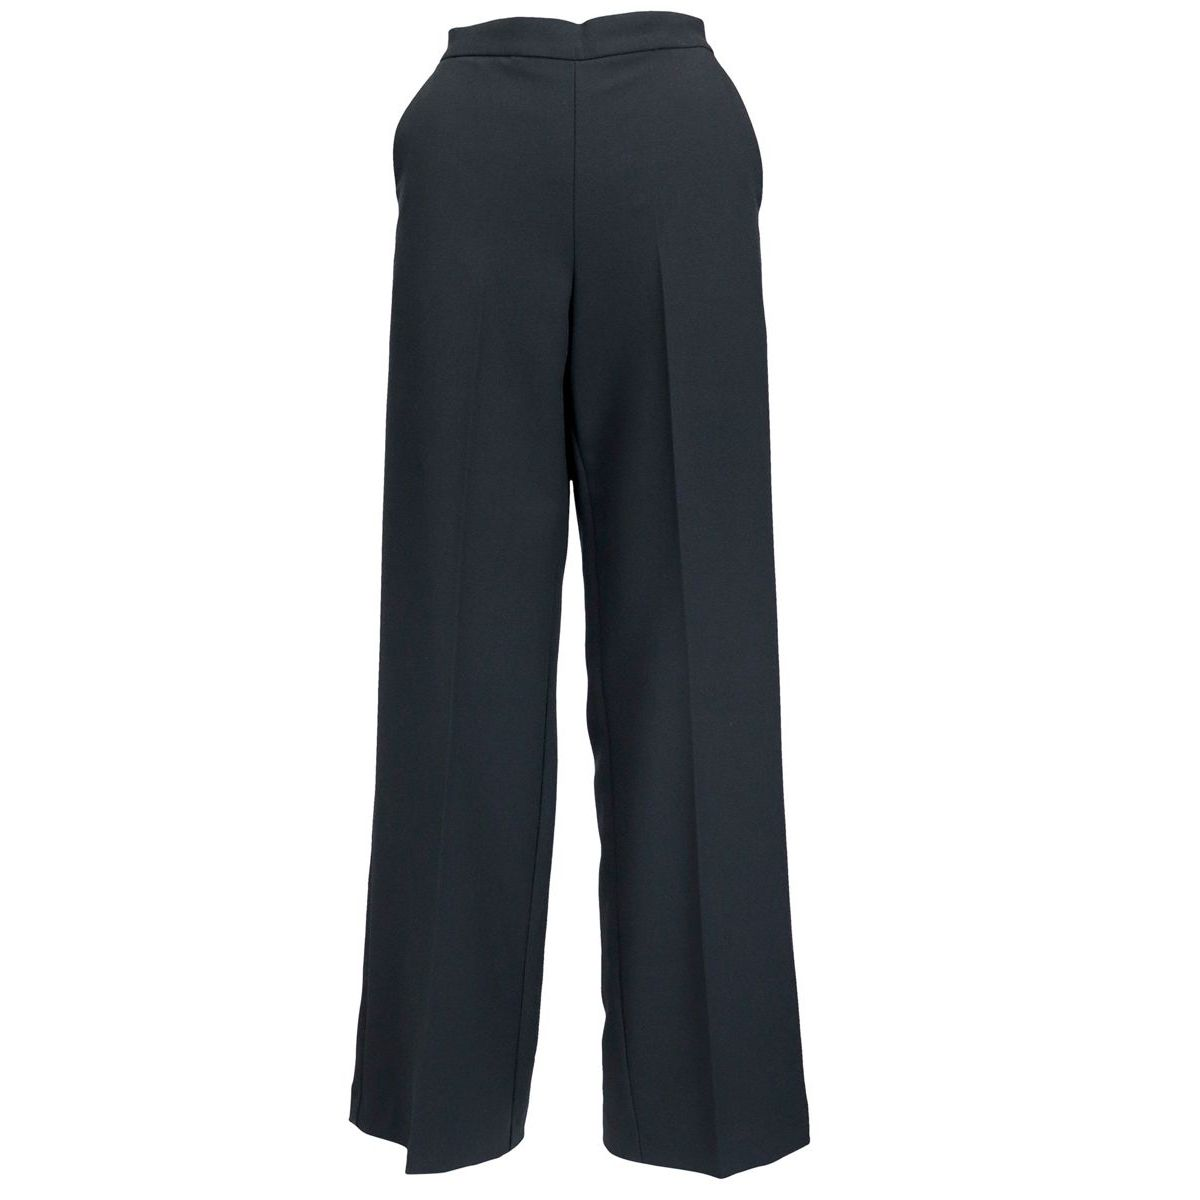 Wide trousers with pressed fold in sablè fabric Black Maliparmi